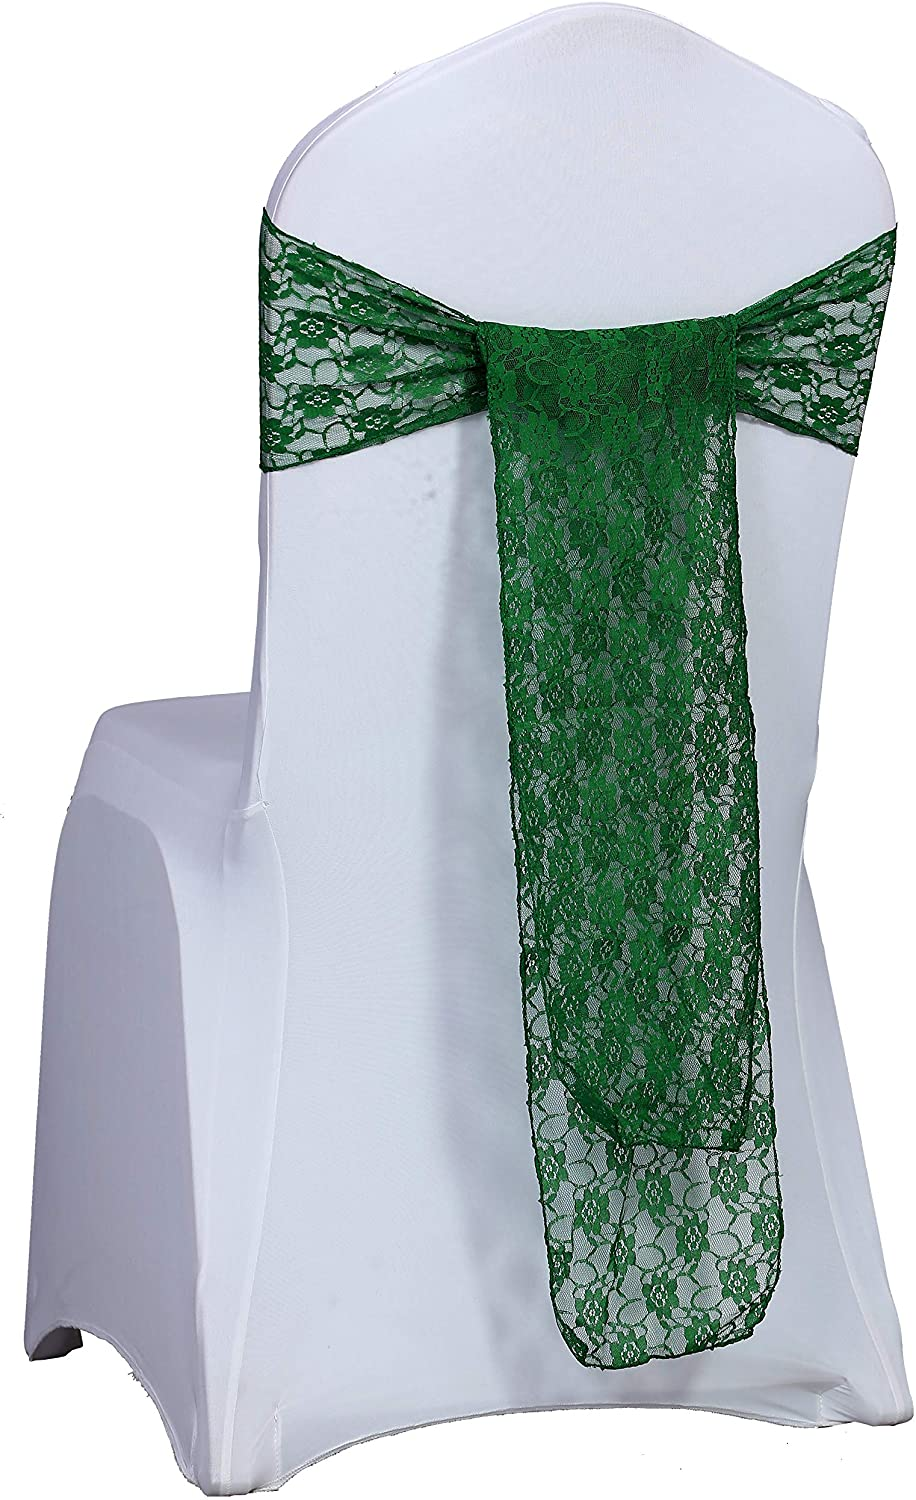 mds Pack of 25 Lace Chair Bow Sashes sash for Wedding or Events Party Supplies Chair lace sash - Hunter Green